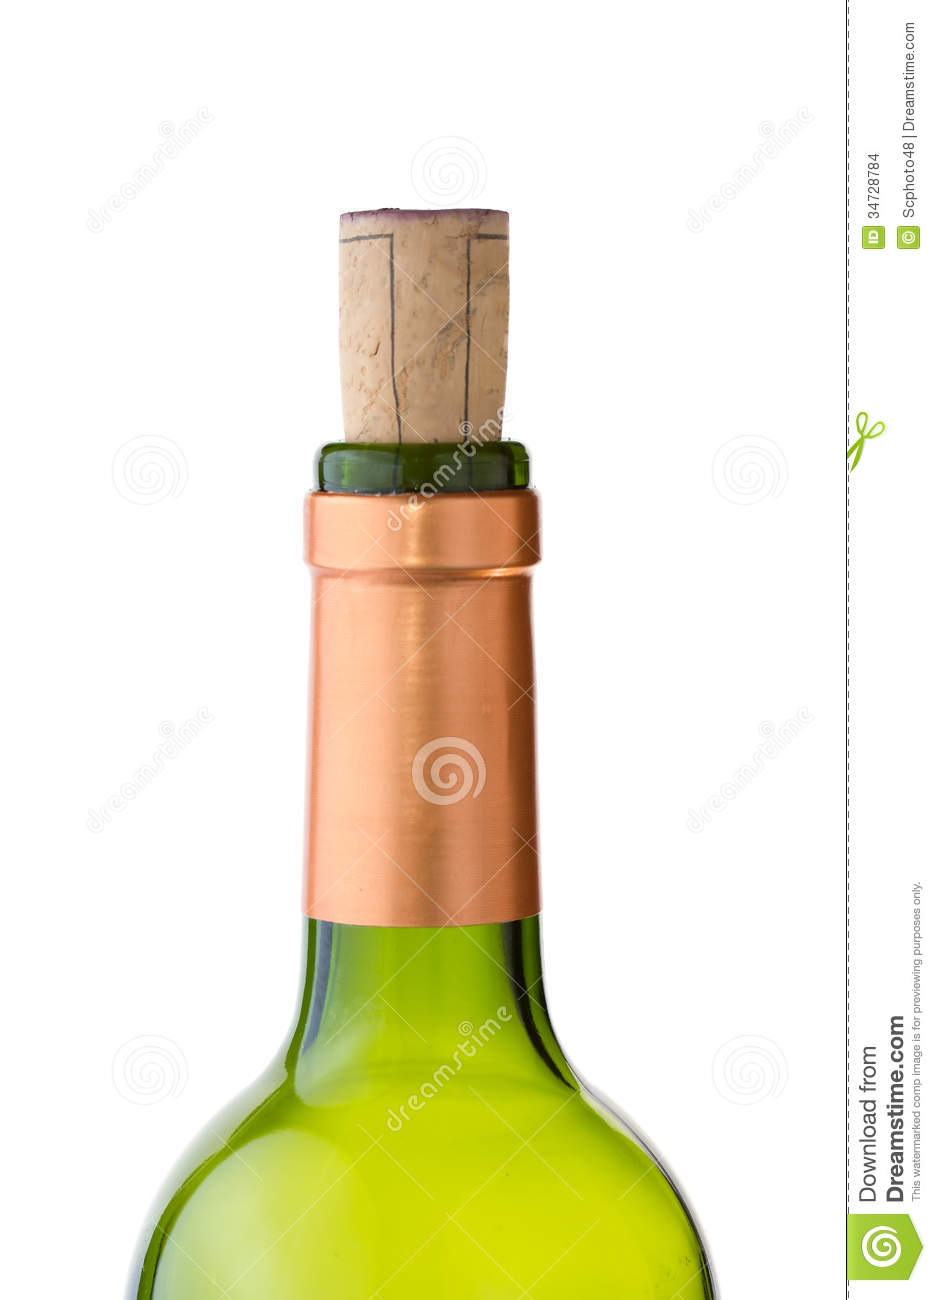 how to take pictures of wine bottles